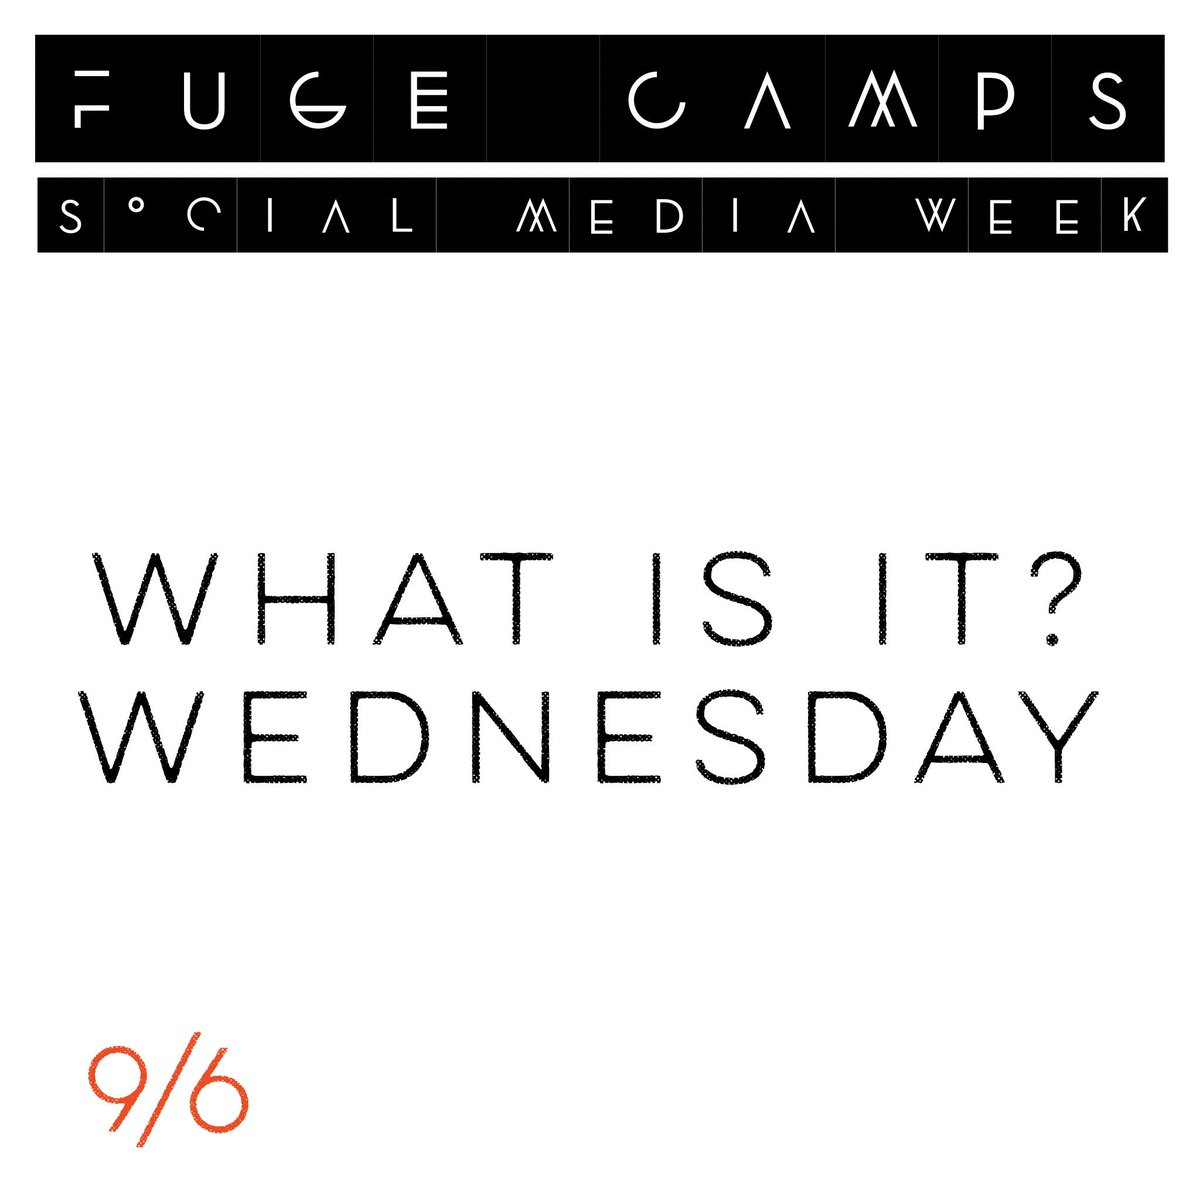 test Twitter Media - TOMORROW: Explain what FUGE is in general, what FUGE is to you personally, etc. Get creative and don't forget to tag us! https://t.co/BM5YbDj59h